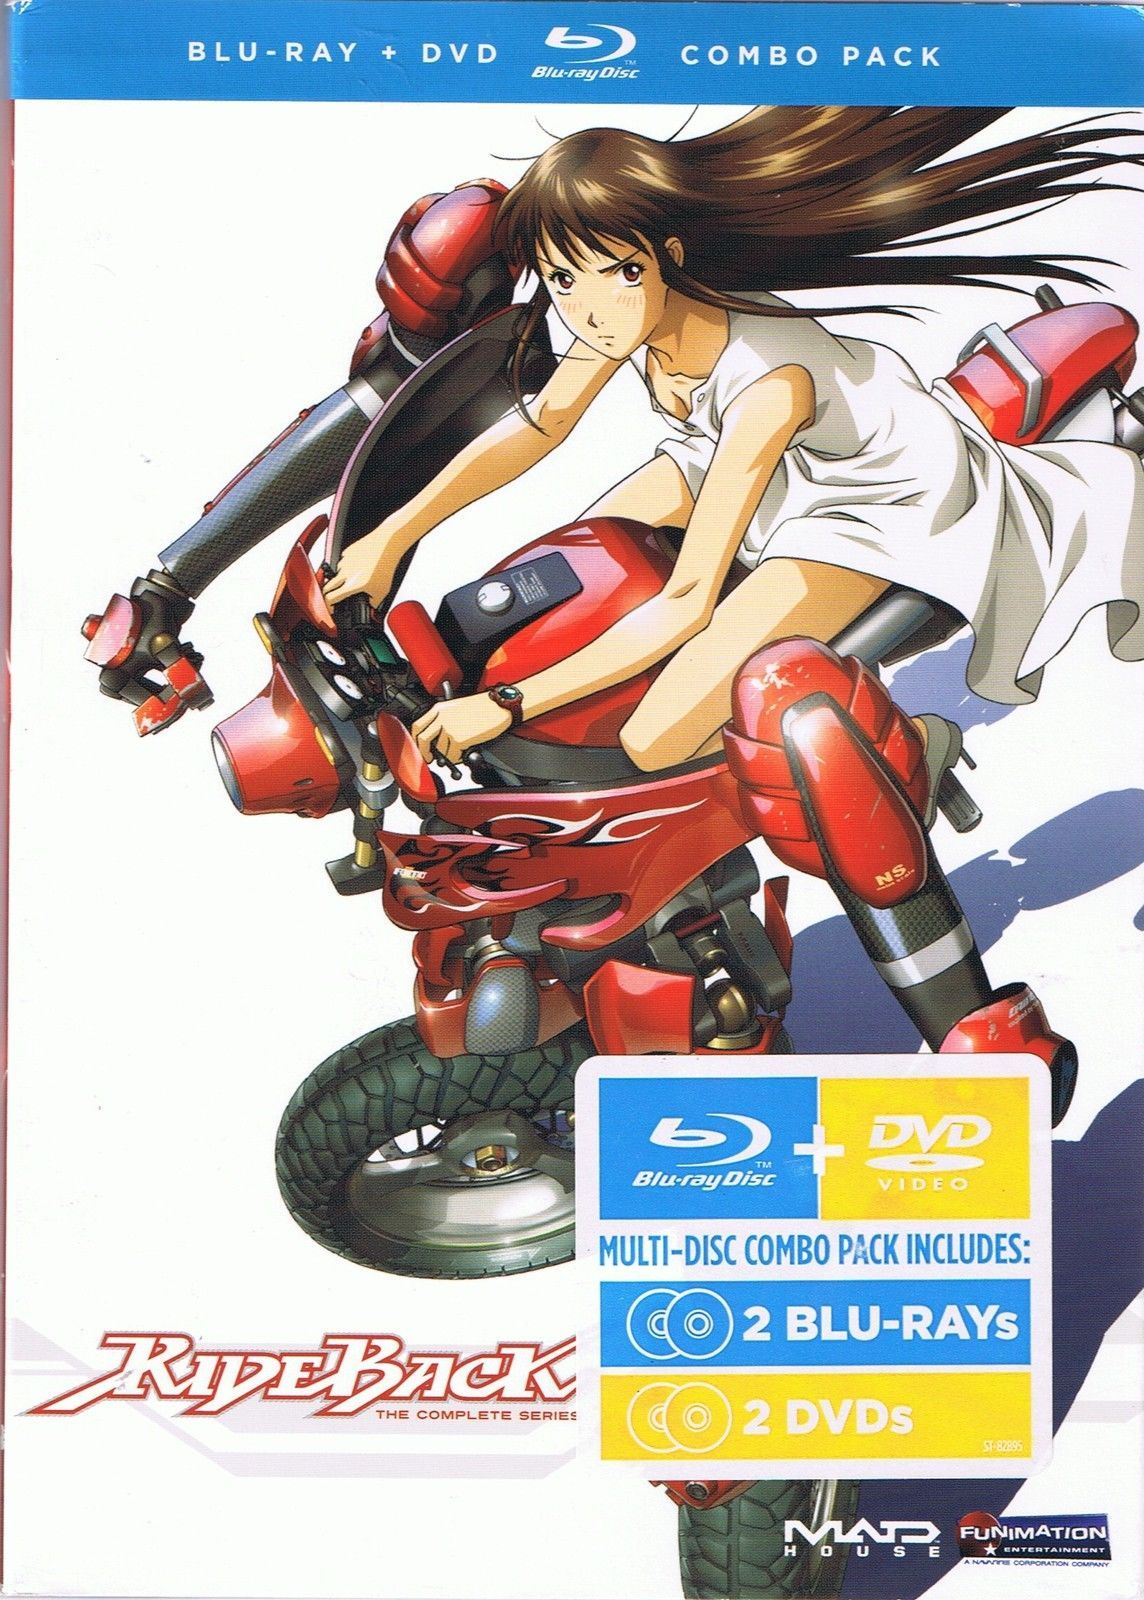 Rideback: The Complete Series (Blu-ray/DVD 4 Disc Set) New Anime Animation